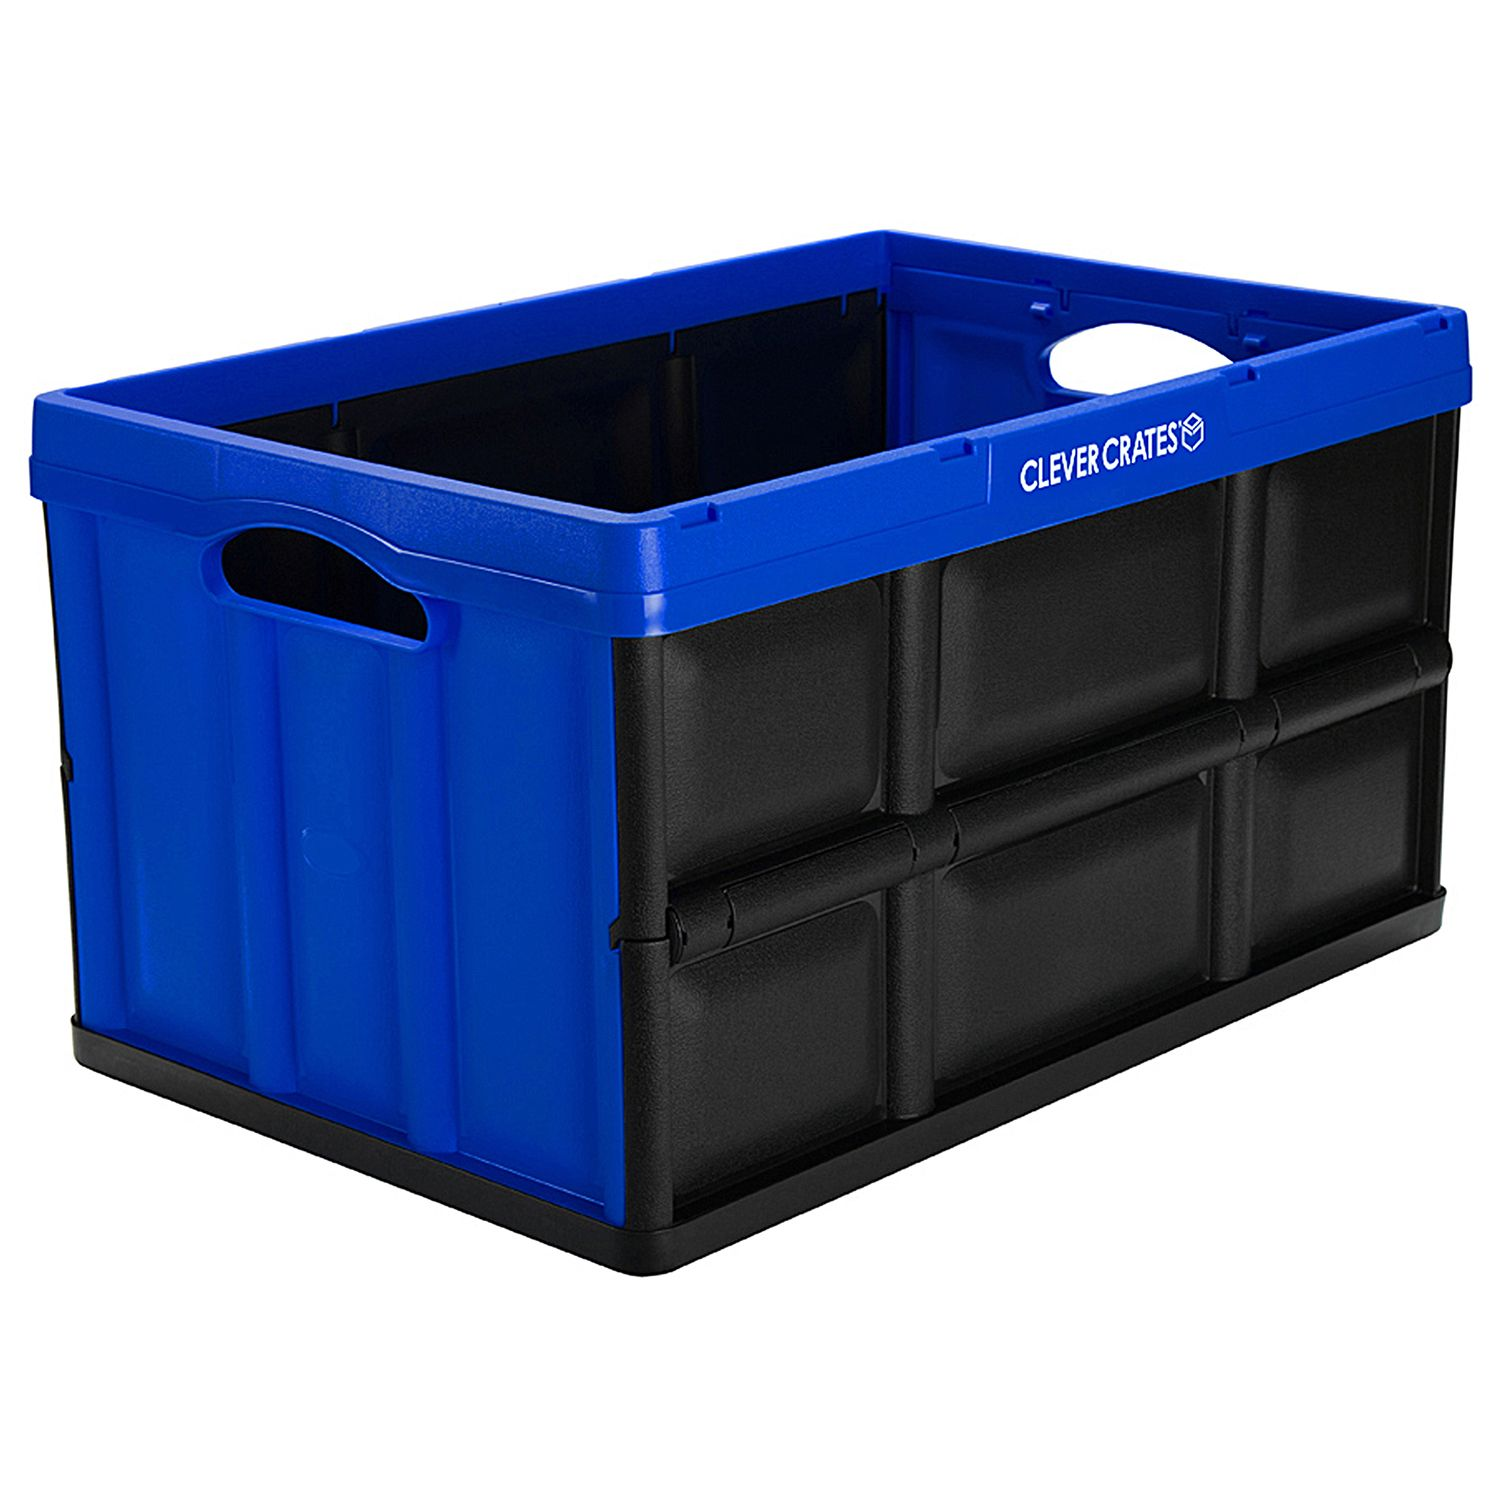 CleverMade CleverCrates Collapsible Storage Container, 62 Liter, Royal Blue